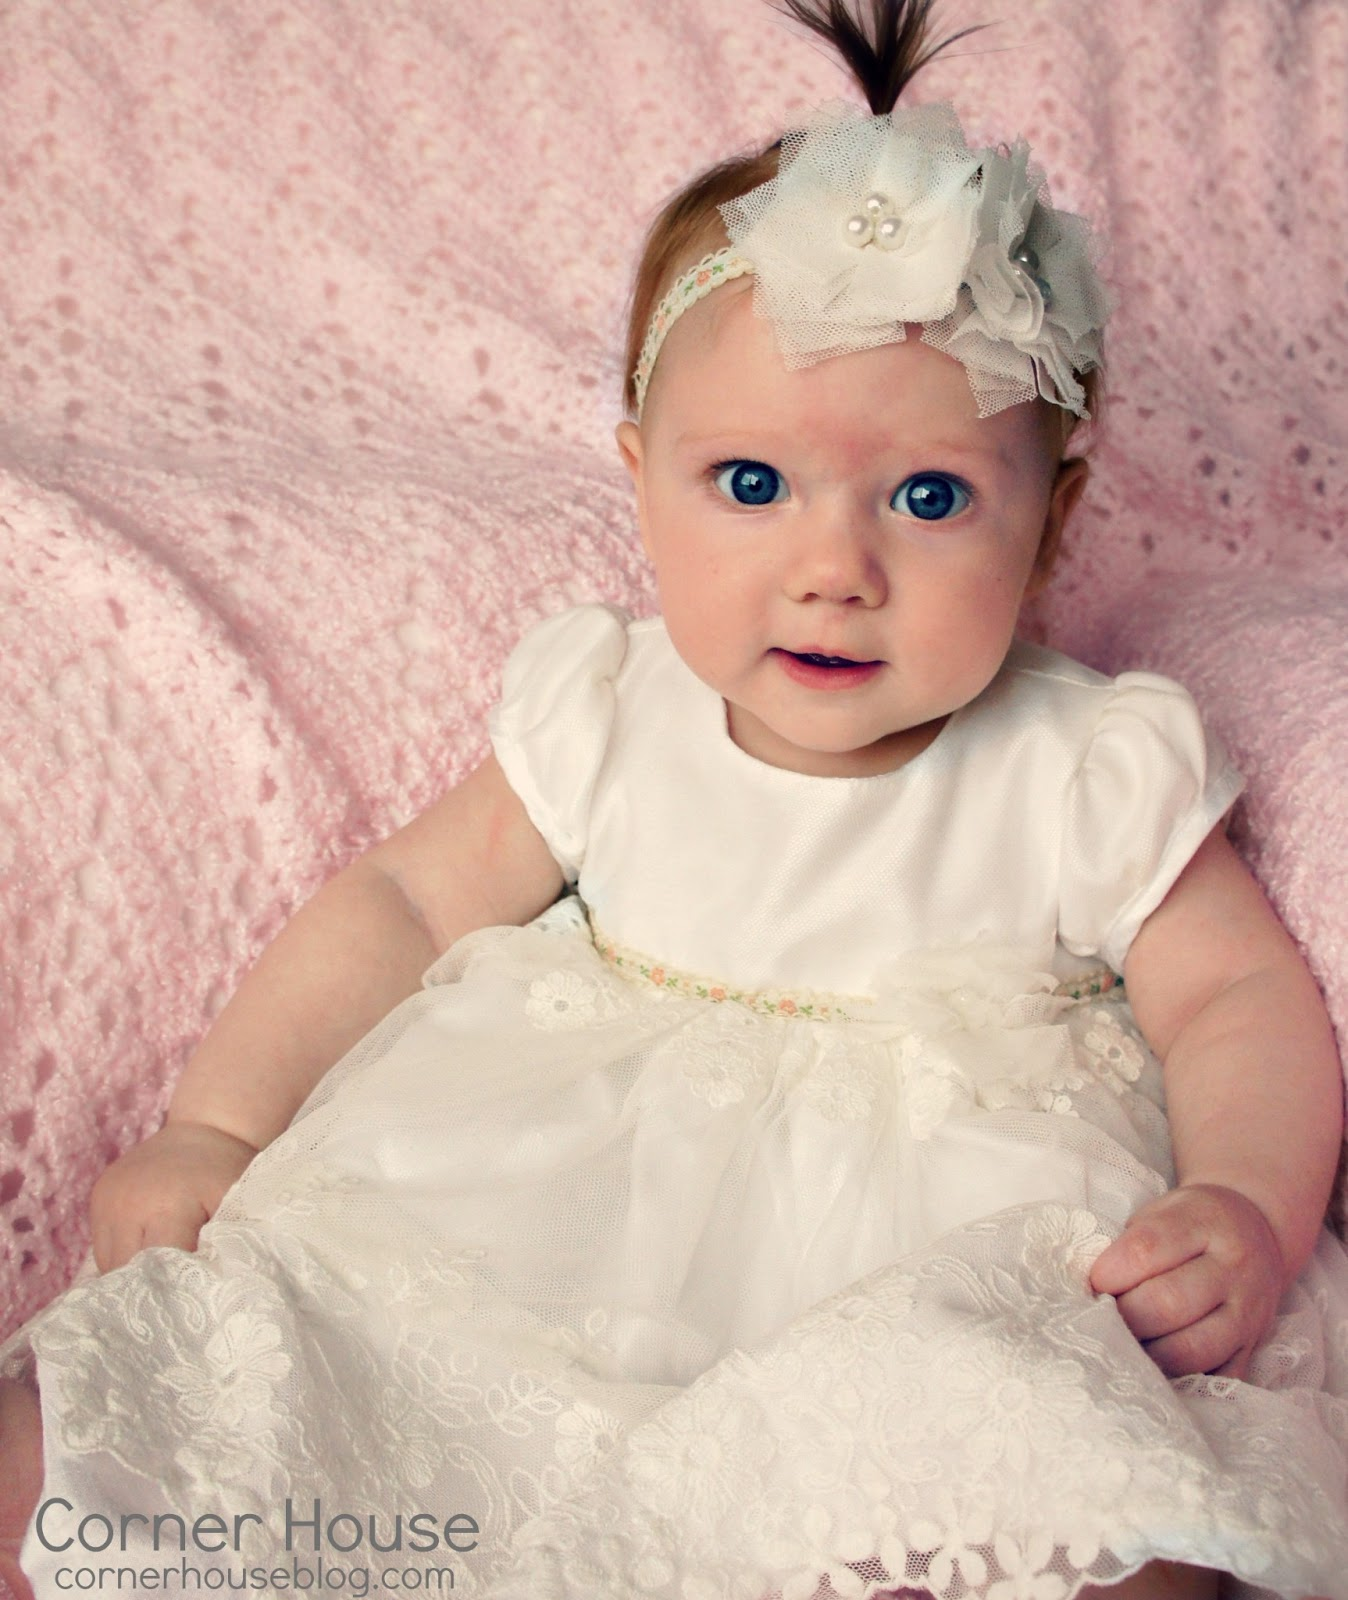 Choose from several materials with our girls' baptism outfits and add extra accessories including headbands, bracelets, and bows for your baby girl.